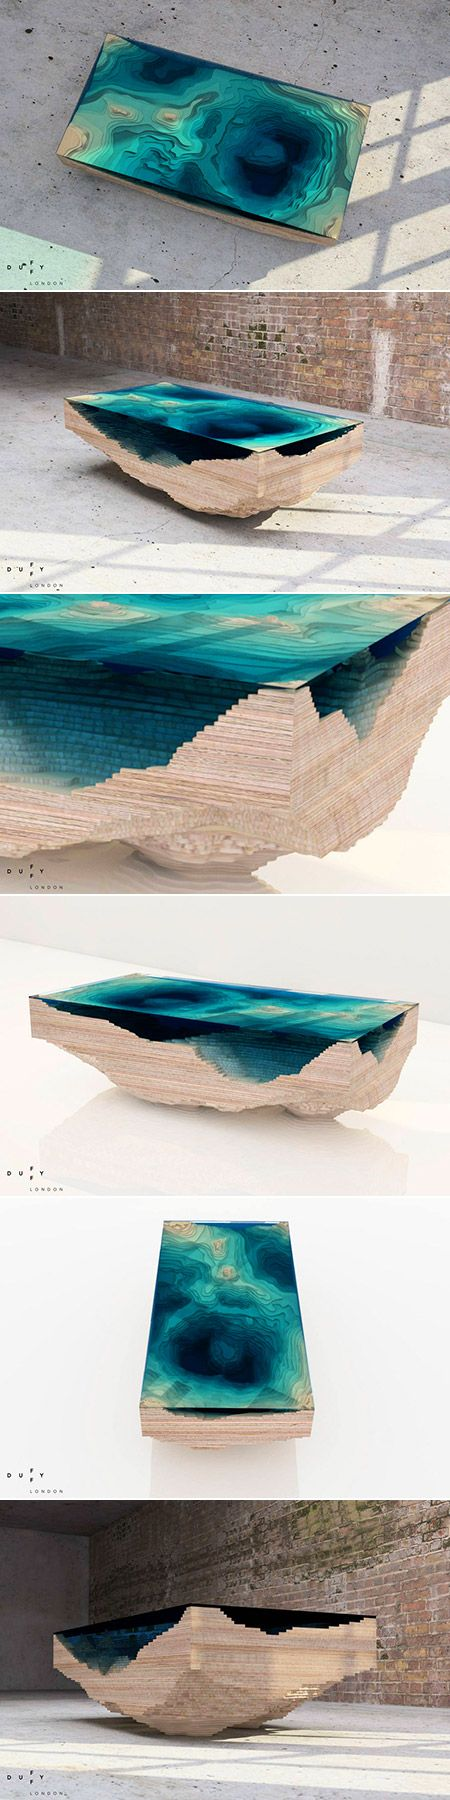 e design by Duffy London - the Abyss table, which is created in a way that mimics the depths of the oceans. This unique table uses multiple layers of stacked glass and wood, completing the table as a three-dimensional representation of a geological map.